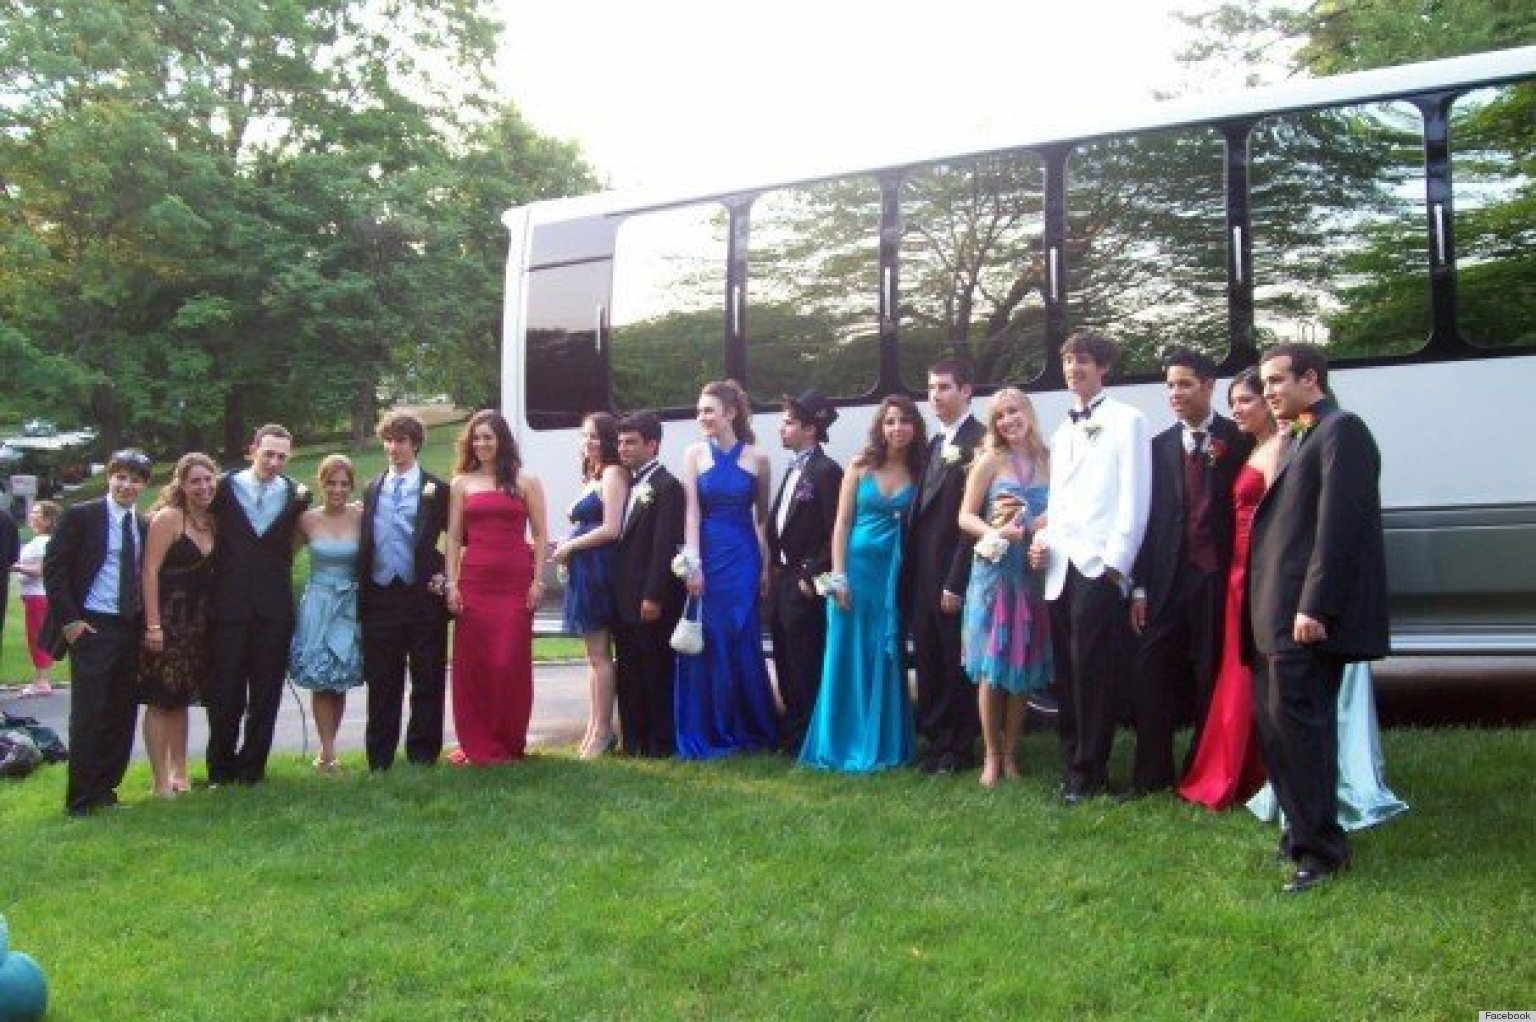 Prom Dress Facebook Groups: Cause For Concern? | HuffPost